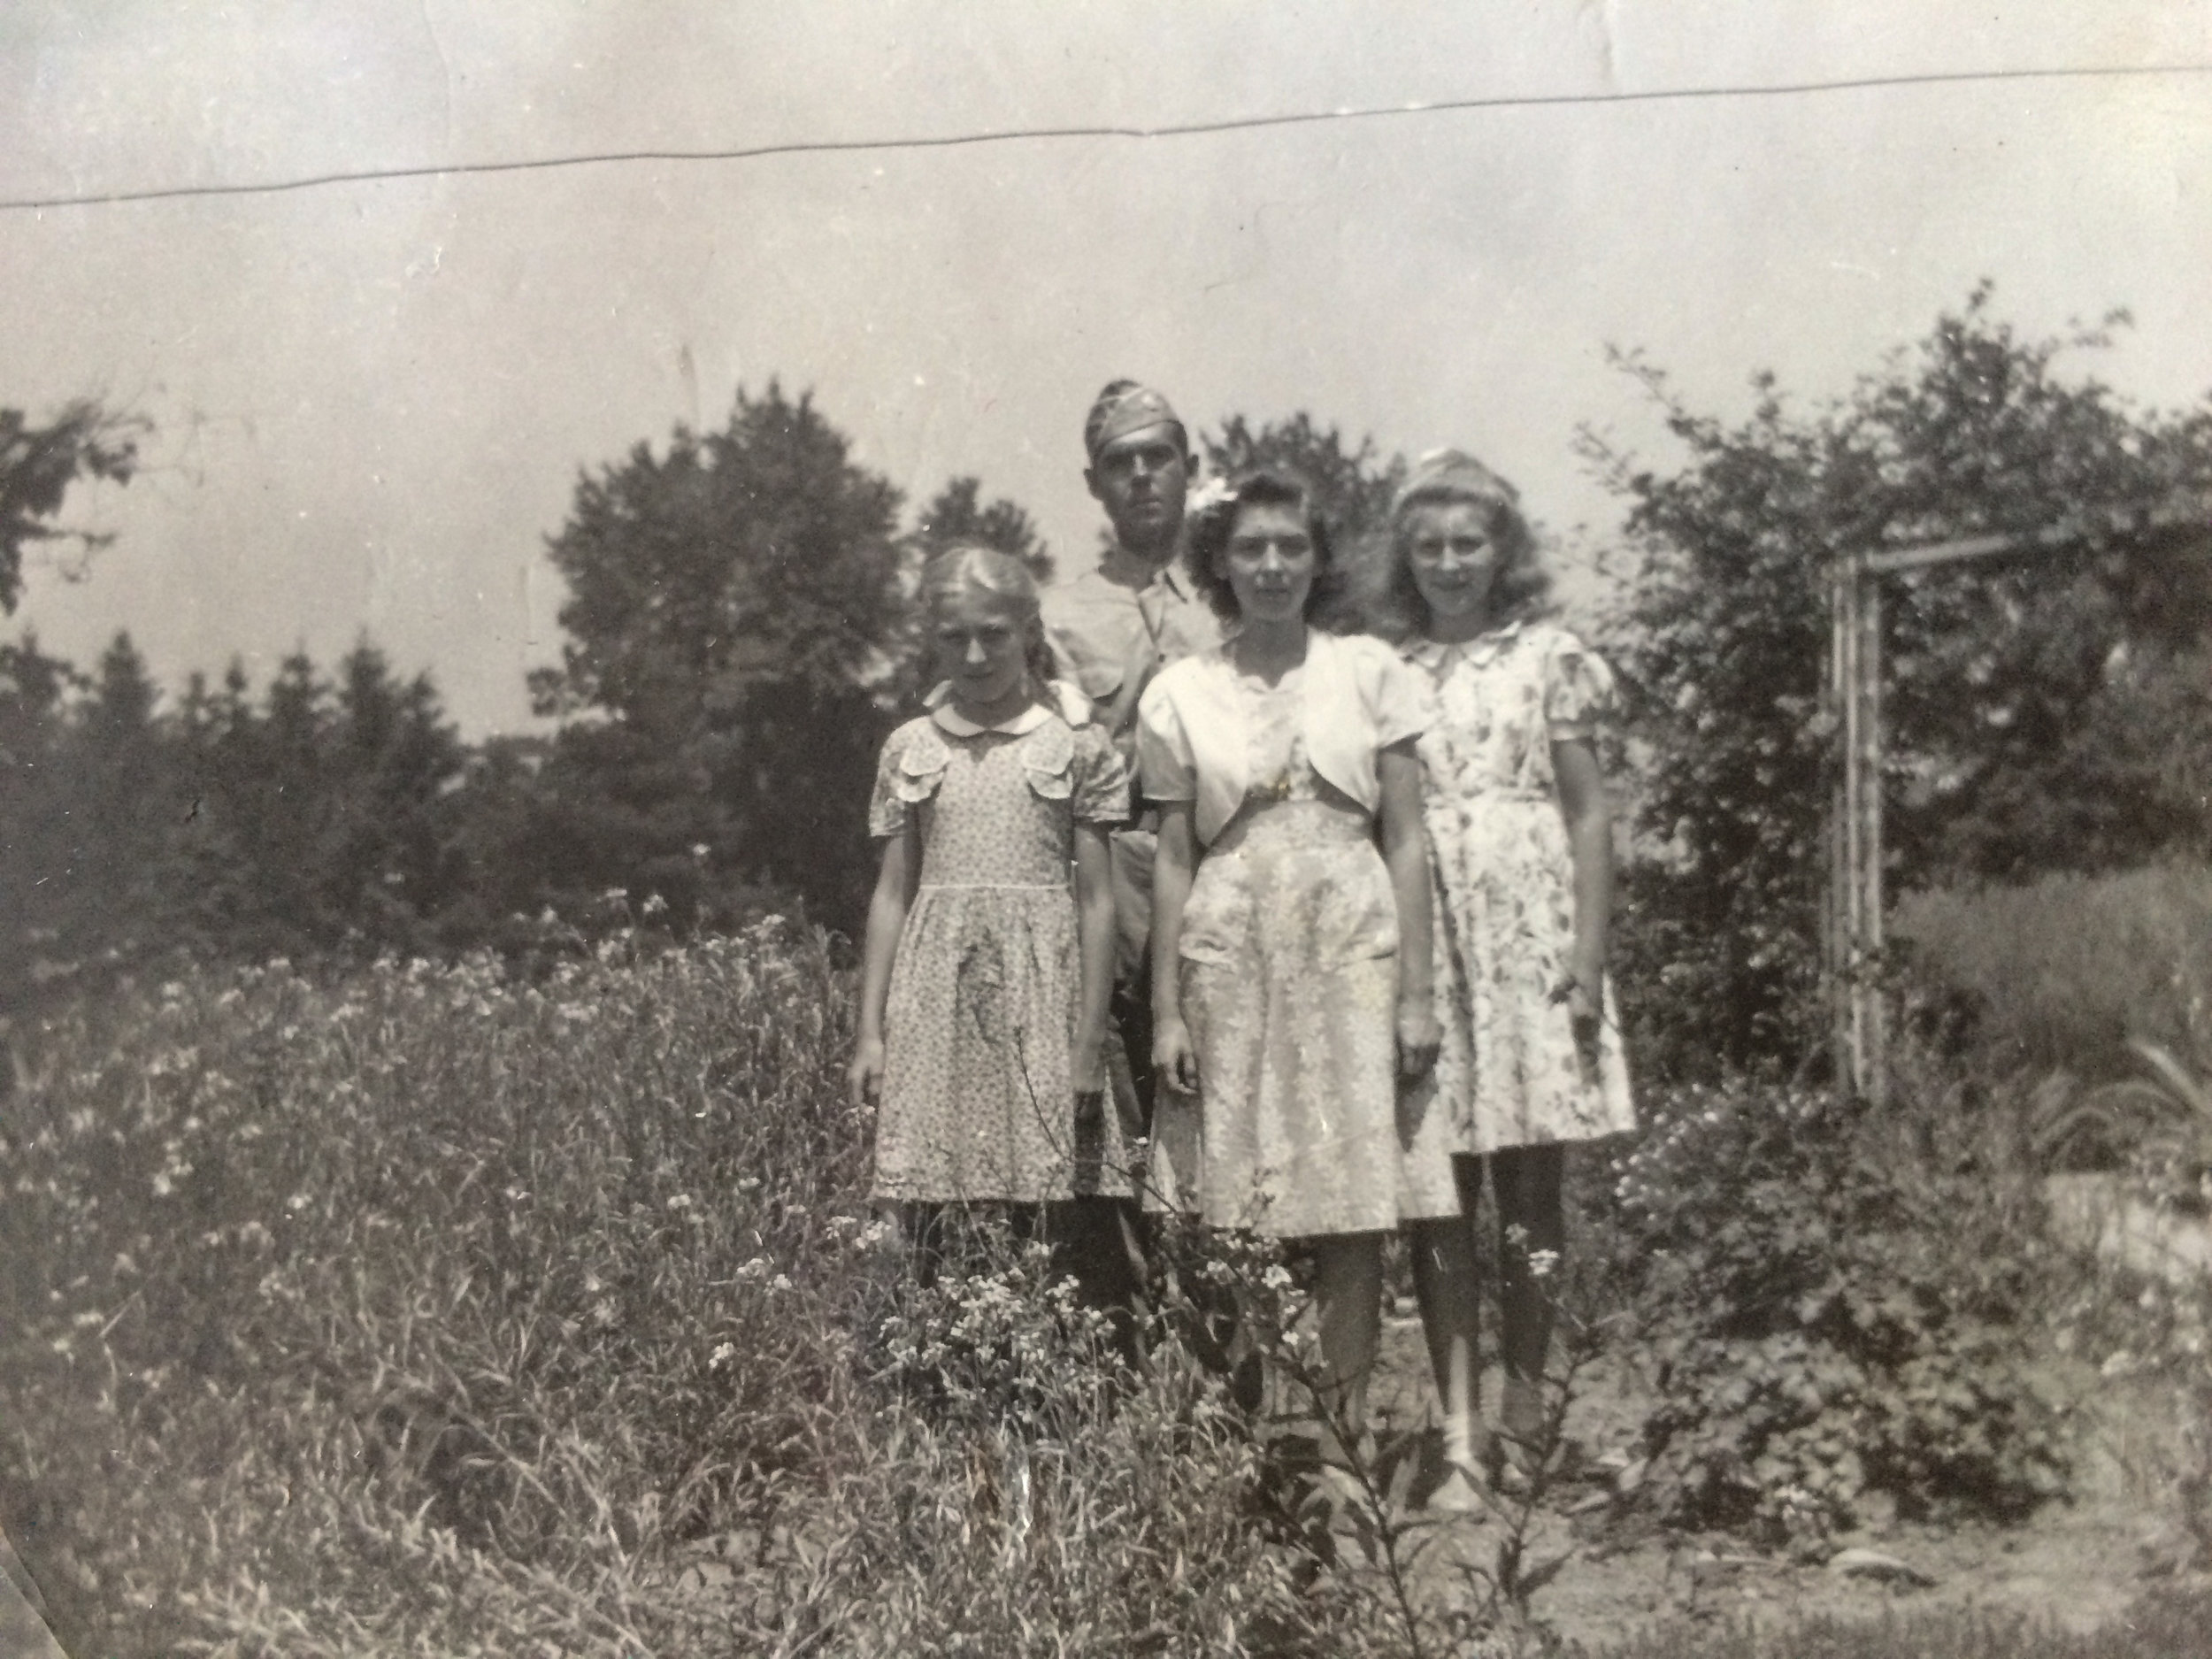 My dad, Roscoe W. Boward, with his younger sisters Rosie, Miriam, and Louise. The photo was most likely taken on one of his furloughs when he was stationed somewhere on the east coast soon after enlisting.